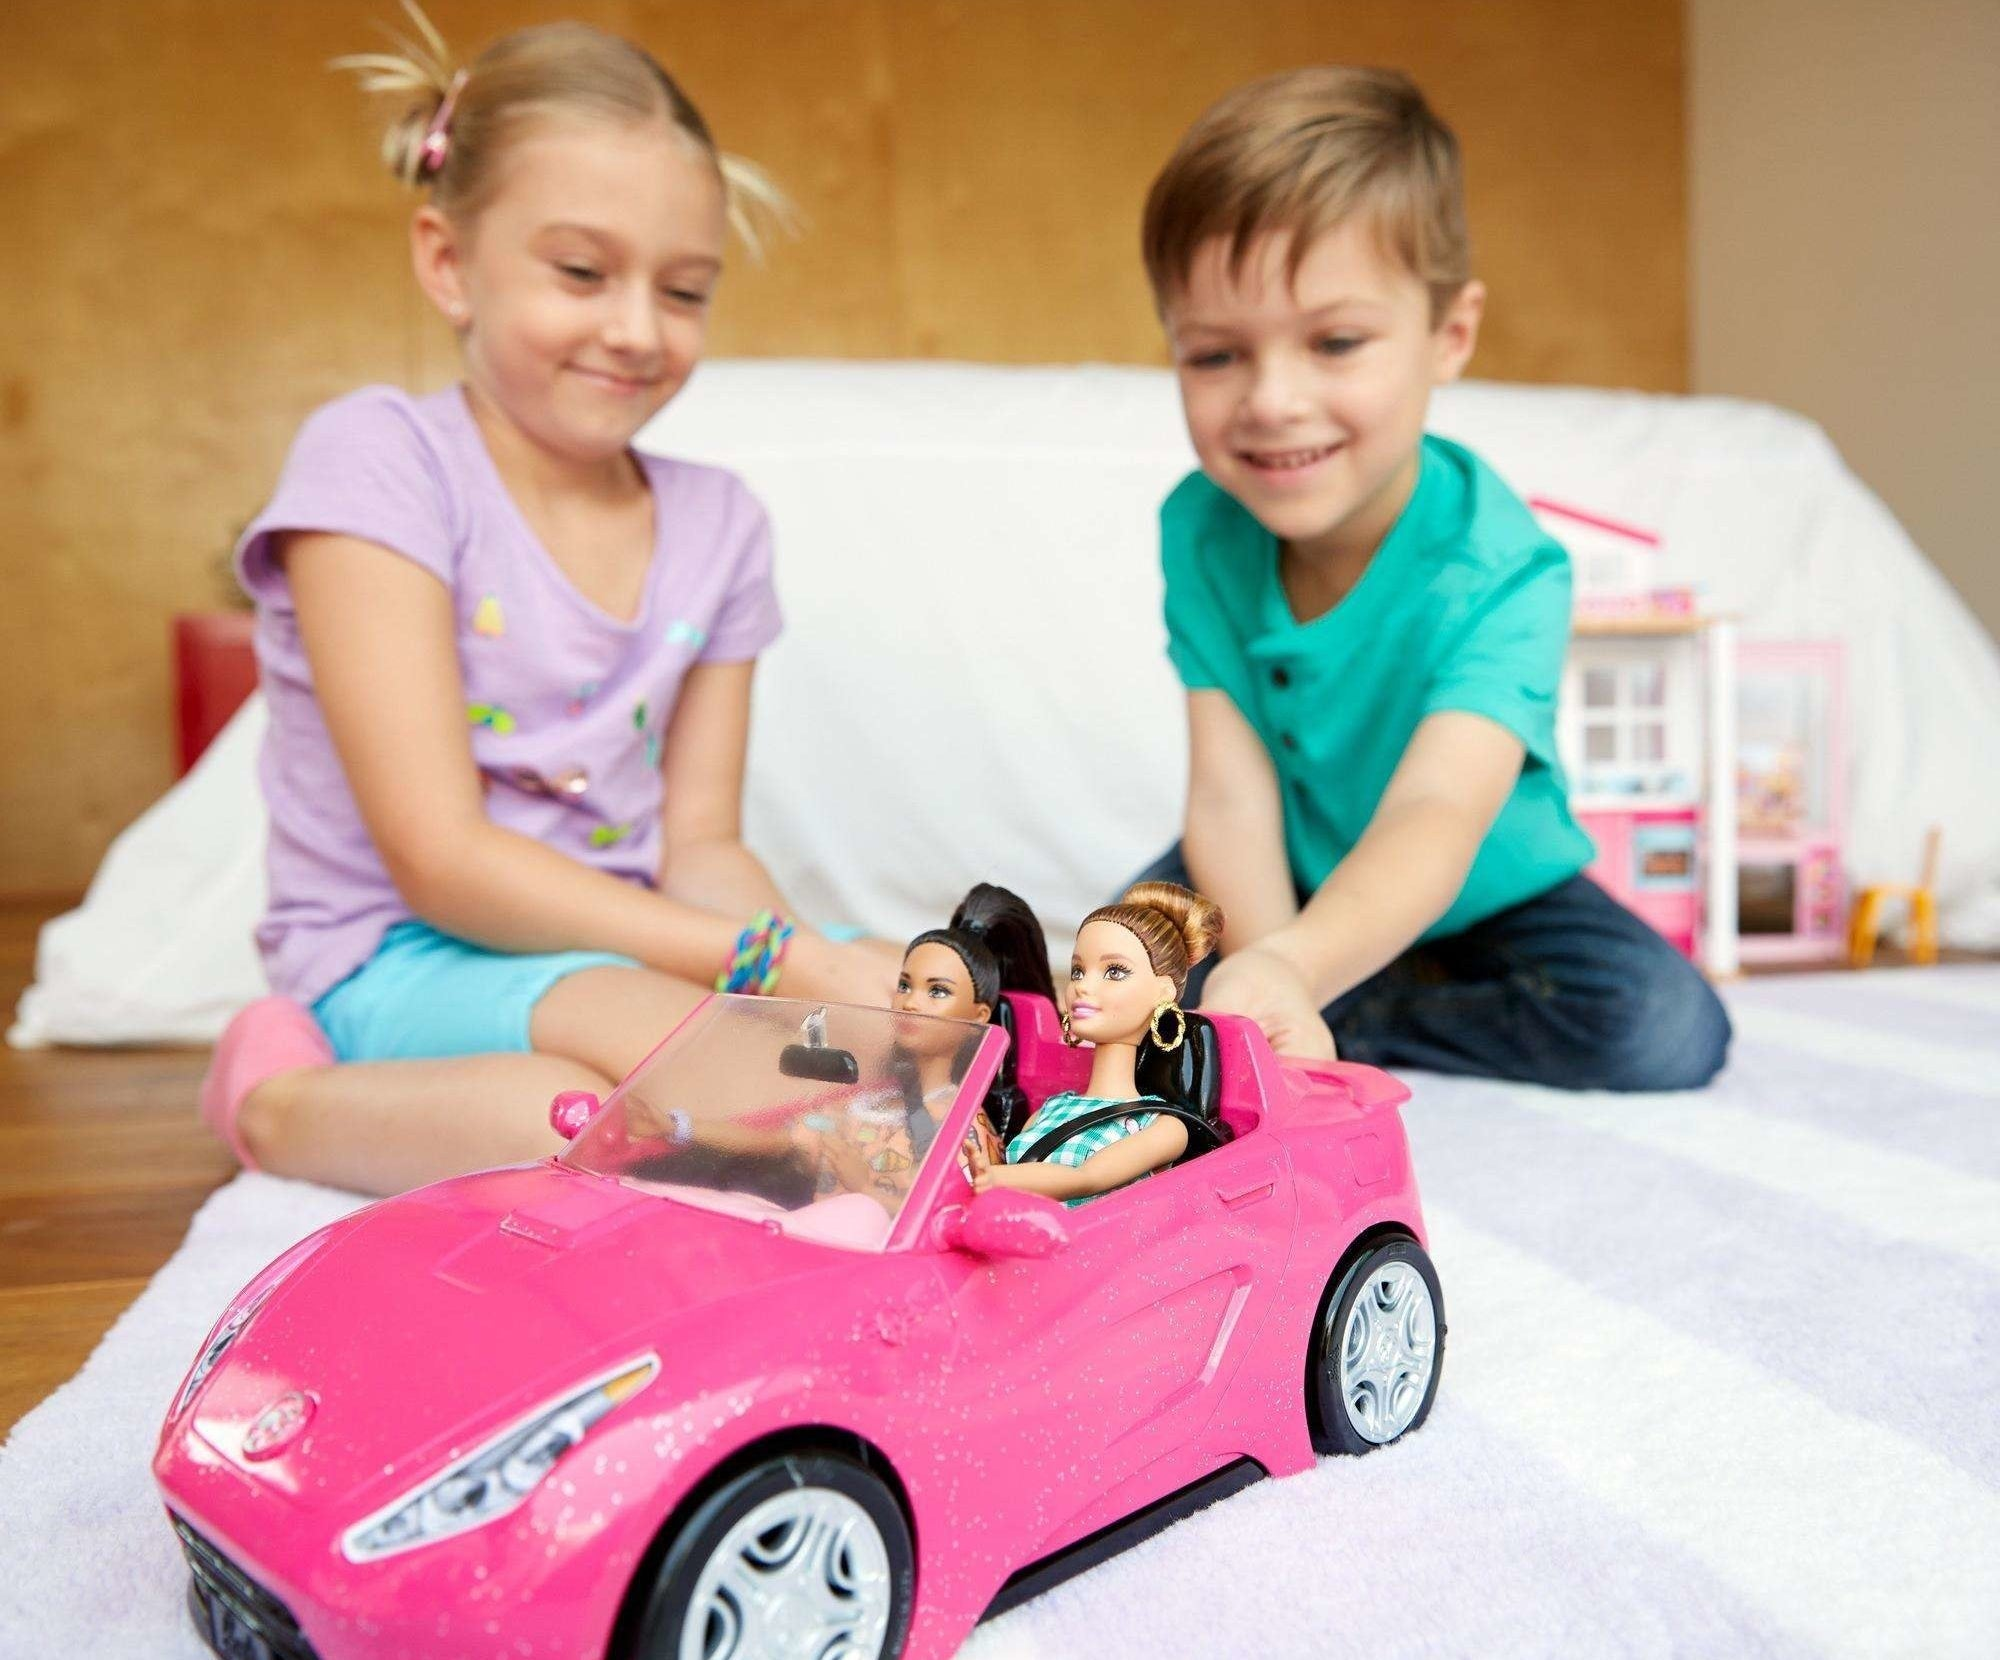 two children playing with a pink convertible car with barbie dolls in it